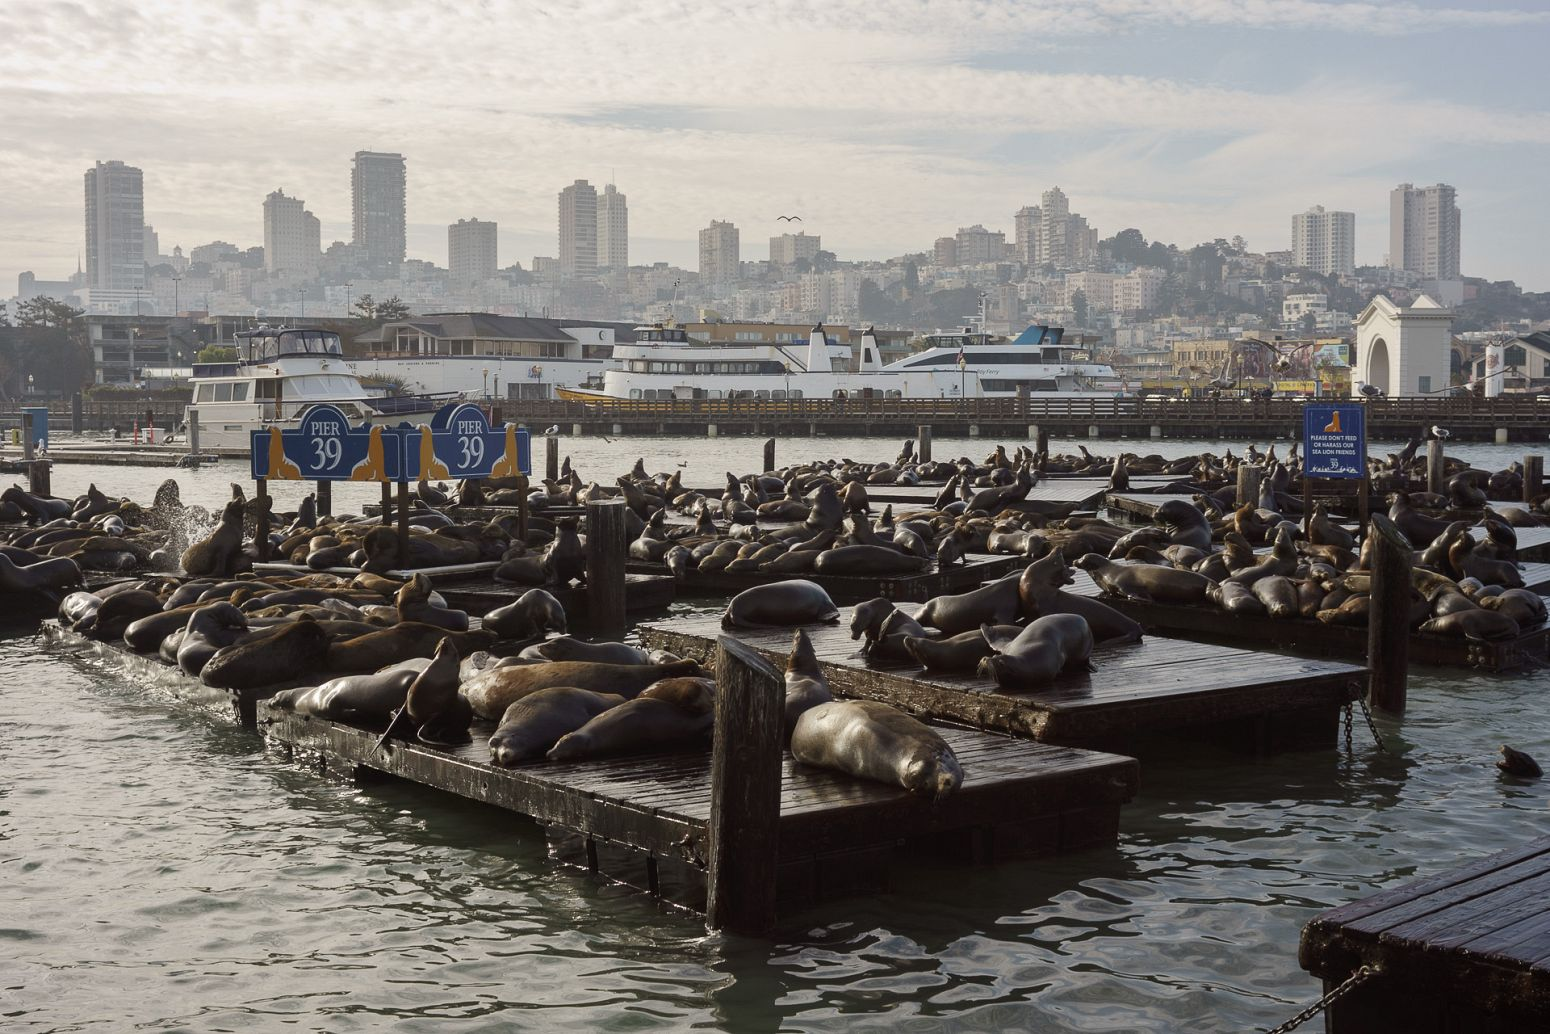 Sea lions at Pier 39, San Francisco, California, USA